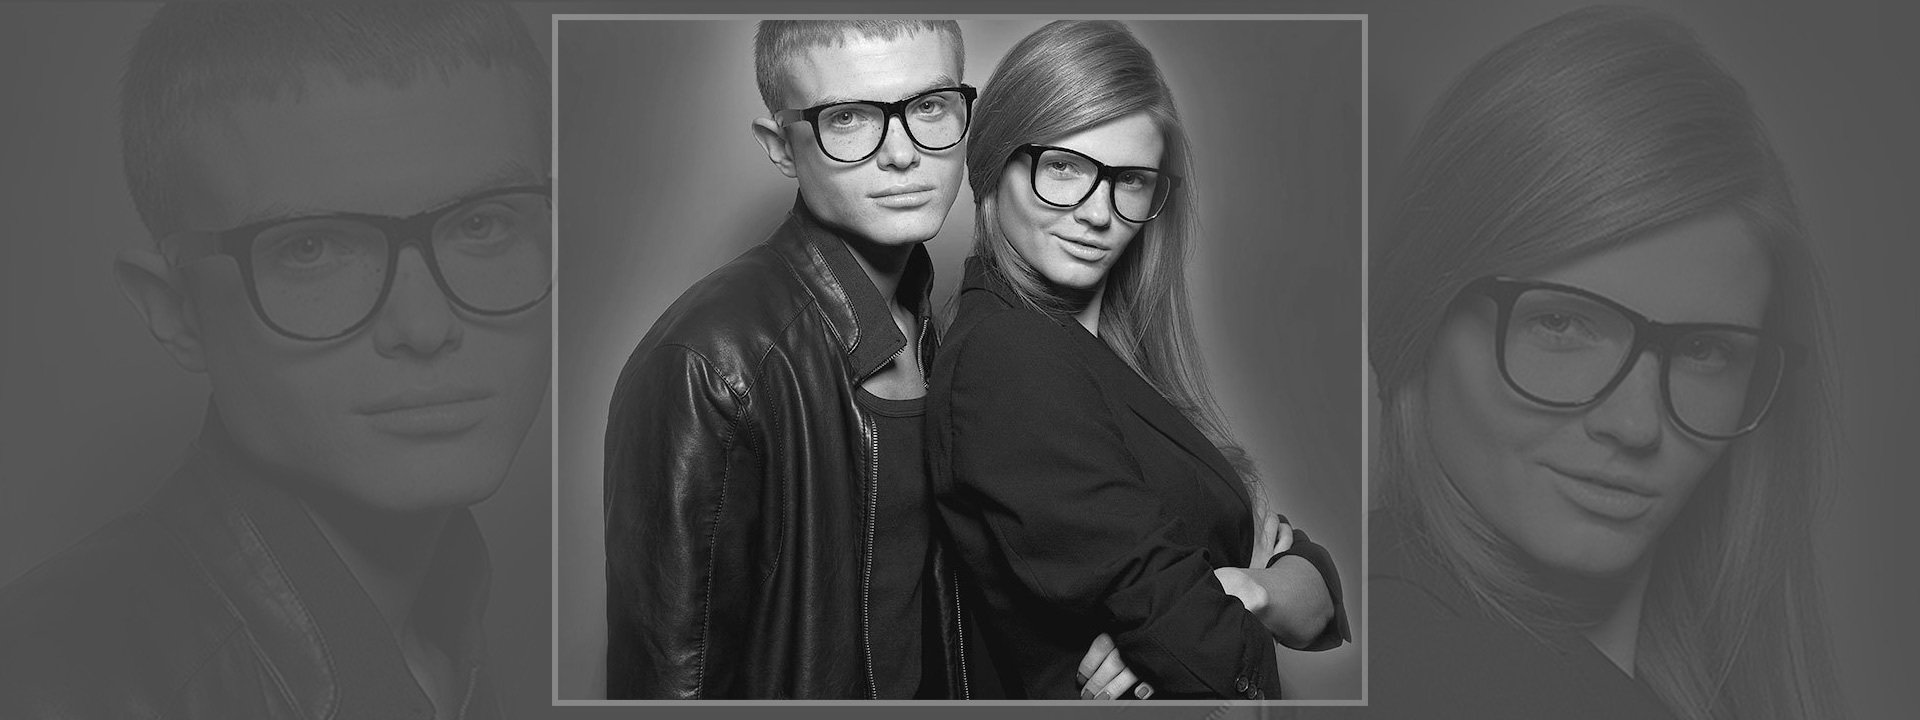 A young man with cropped hair, and young lady with long hair, both wearing large framed horn rimmed glasses